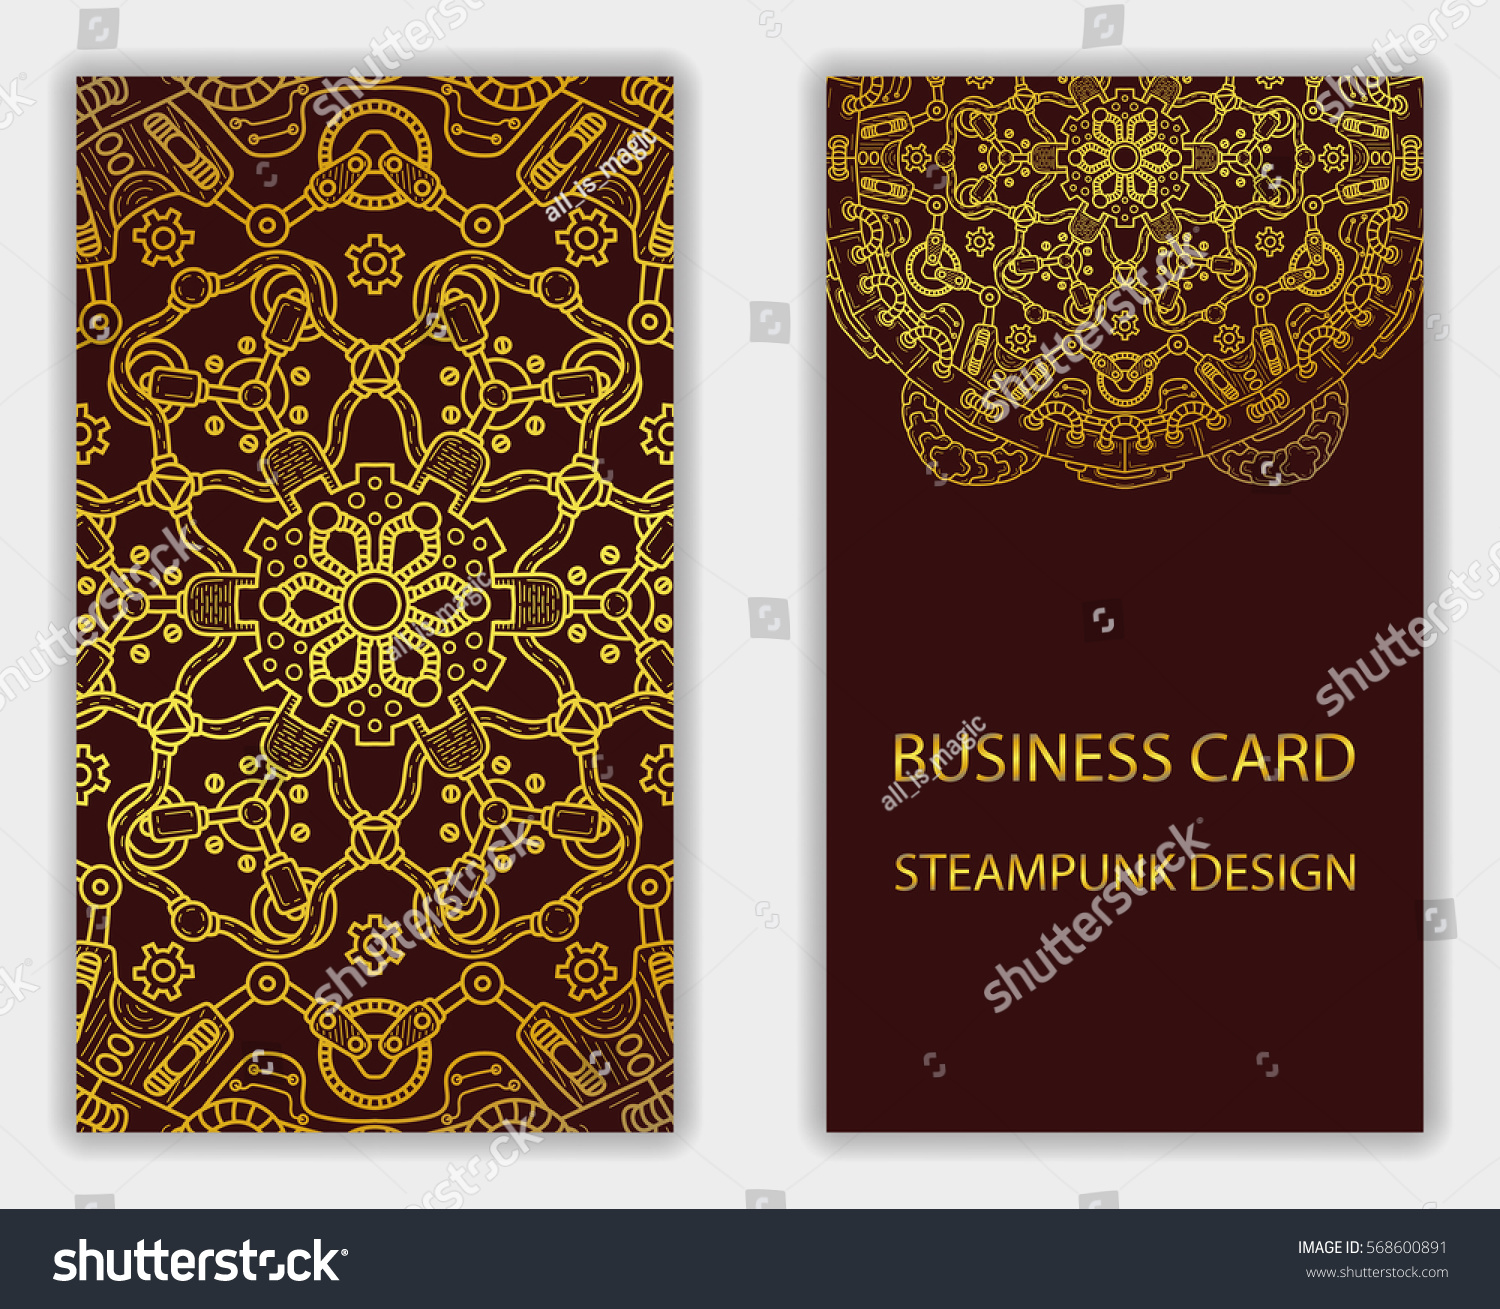 business card steampunk abstract design elements stock